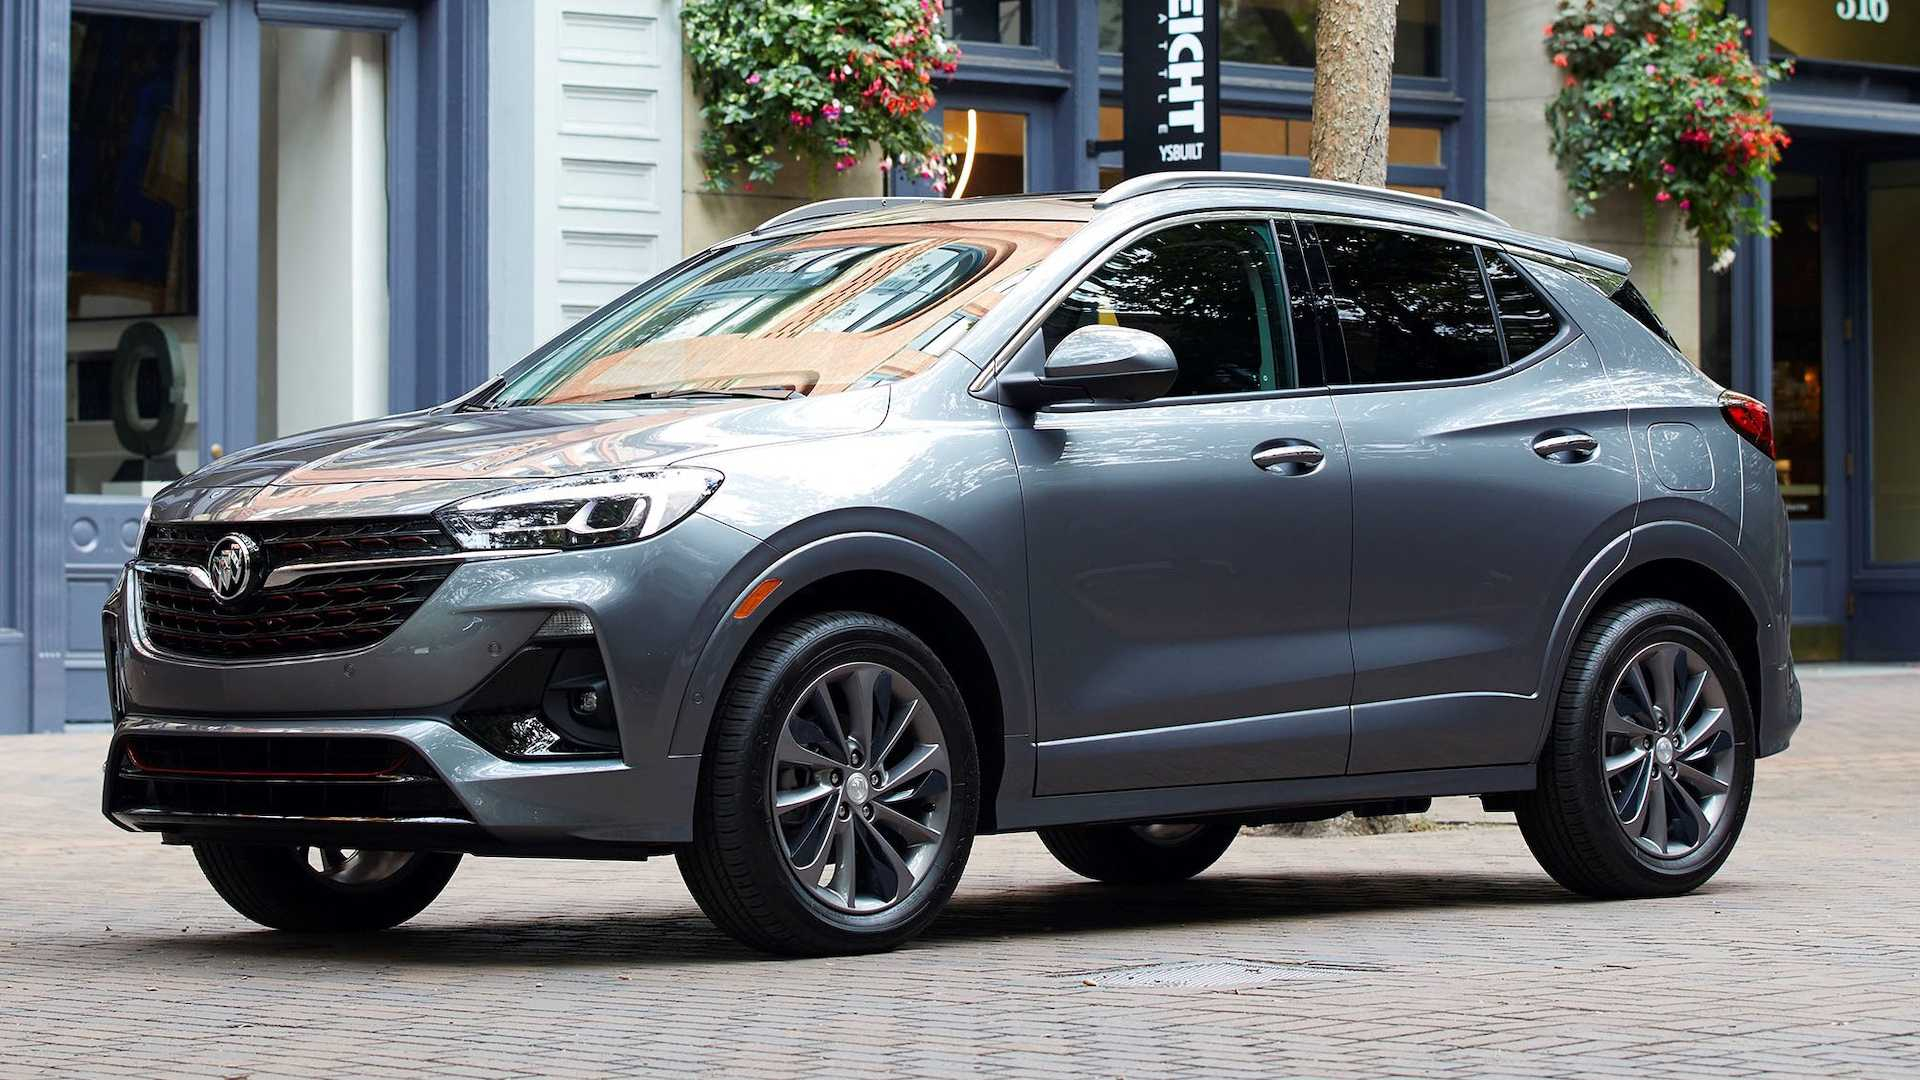 2021 Buick Encore Gx Details Emerge: Styling Tweaks, More Tech 2022 Buick Encore Gx Build And Price, Build, Colors